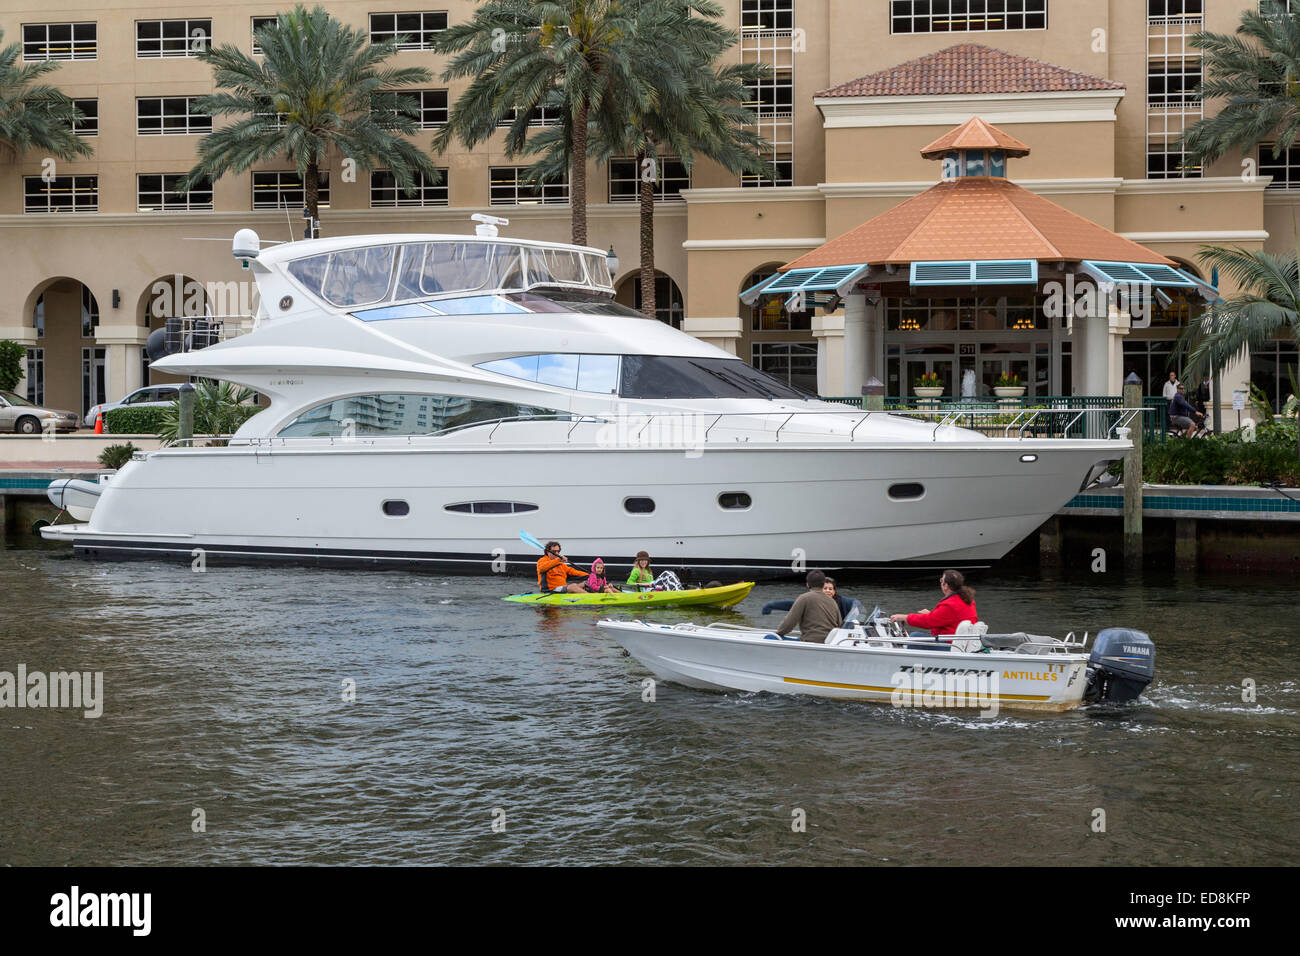 Ft. Lauderdale, Florida.  Boats on New River in front of Nu River Landing Condominium.  Juxtaposition of Life Styles - Stock Image